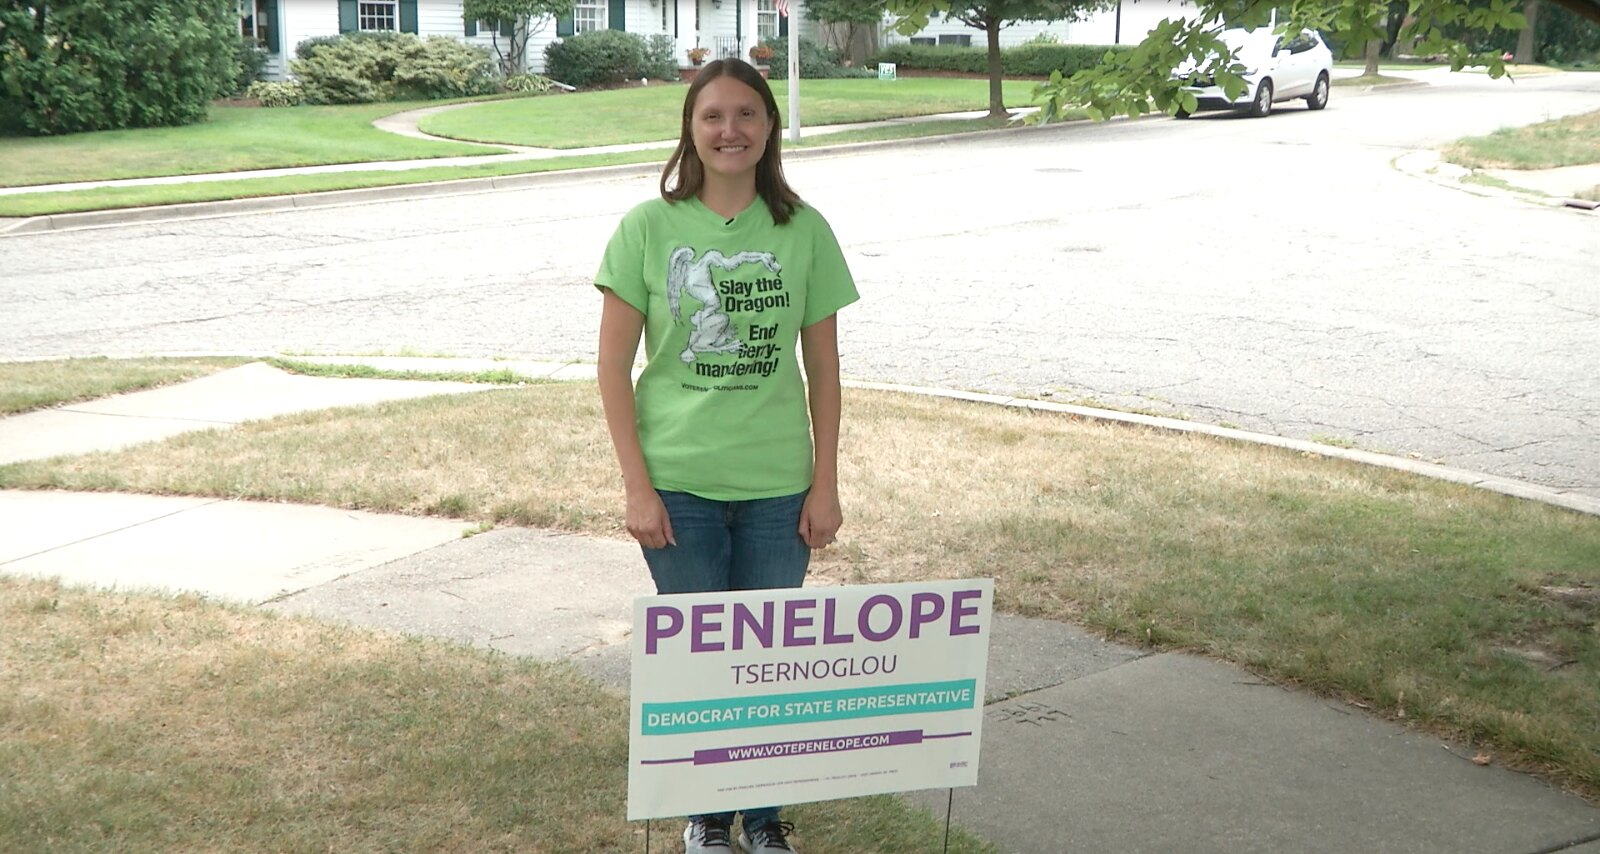 On the Campaign Trail: Penelope Tsernoglou 69th State Rep. Candidate (D)